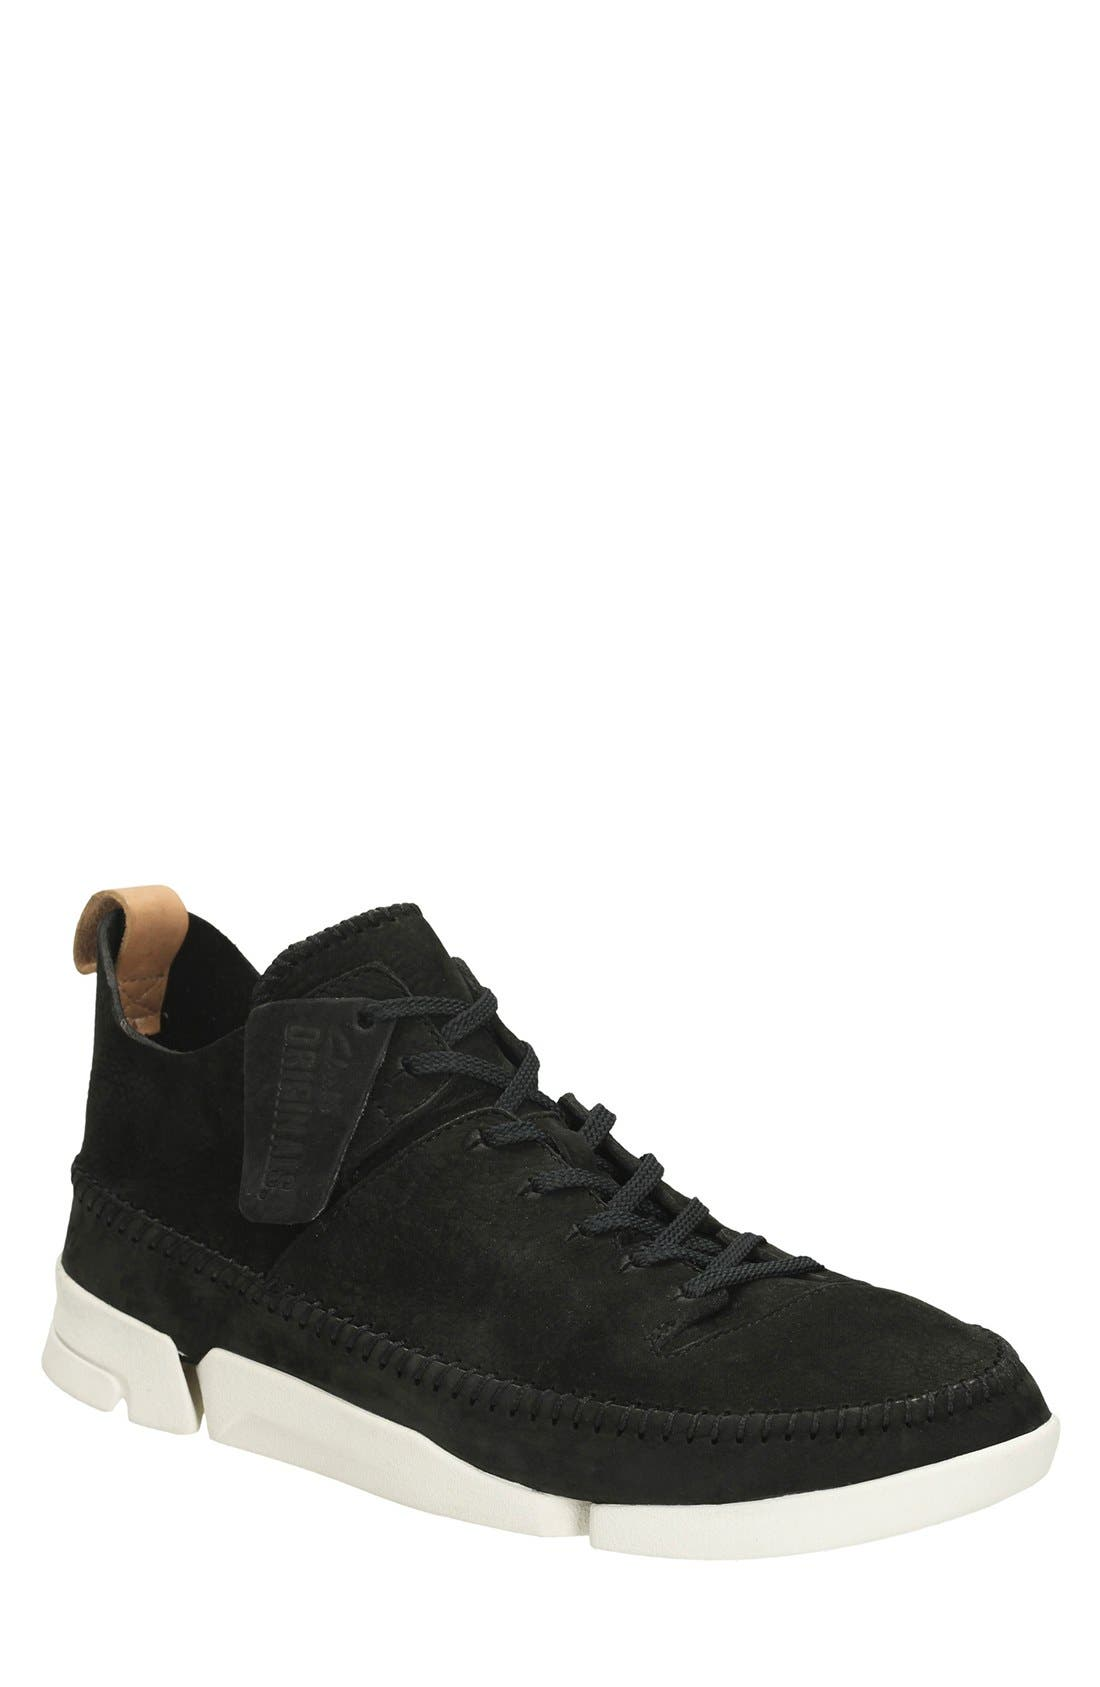 Clarks<sup>®</sup> 'Trigenic Flex' Leather Sneaker,                             Main thumbnail 1, color,                             Black